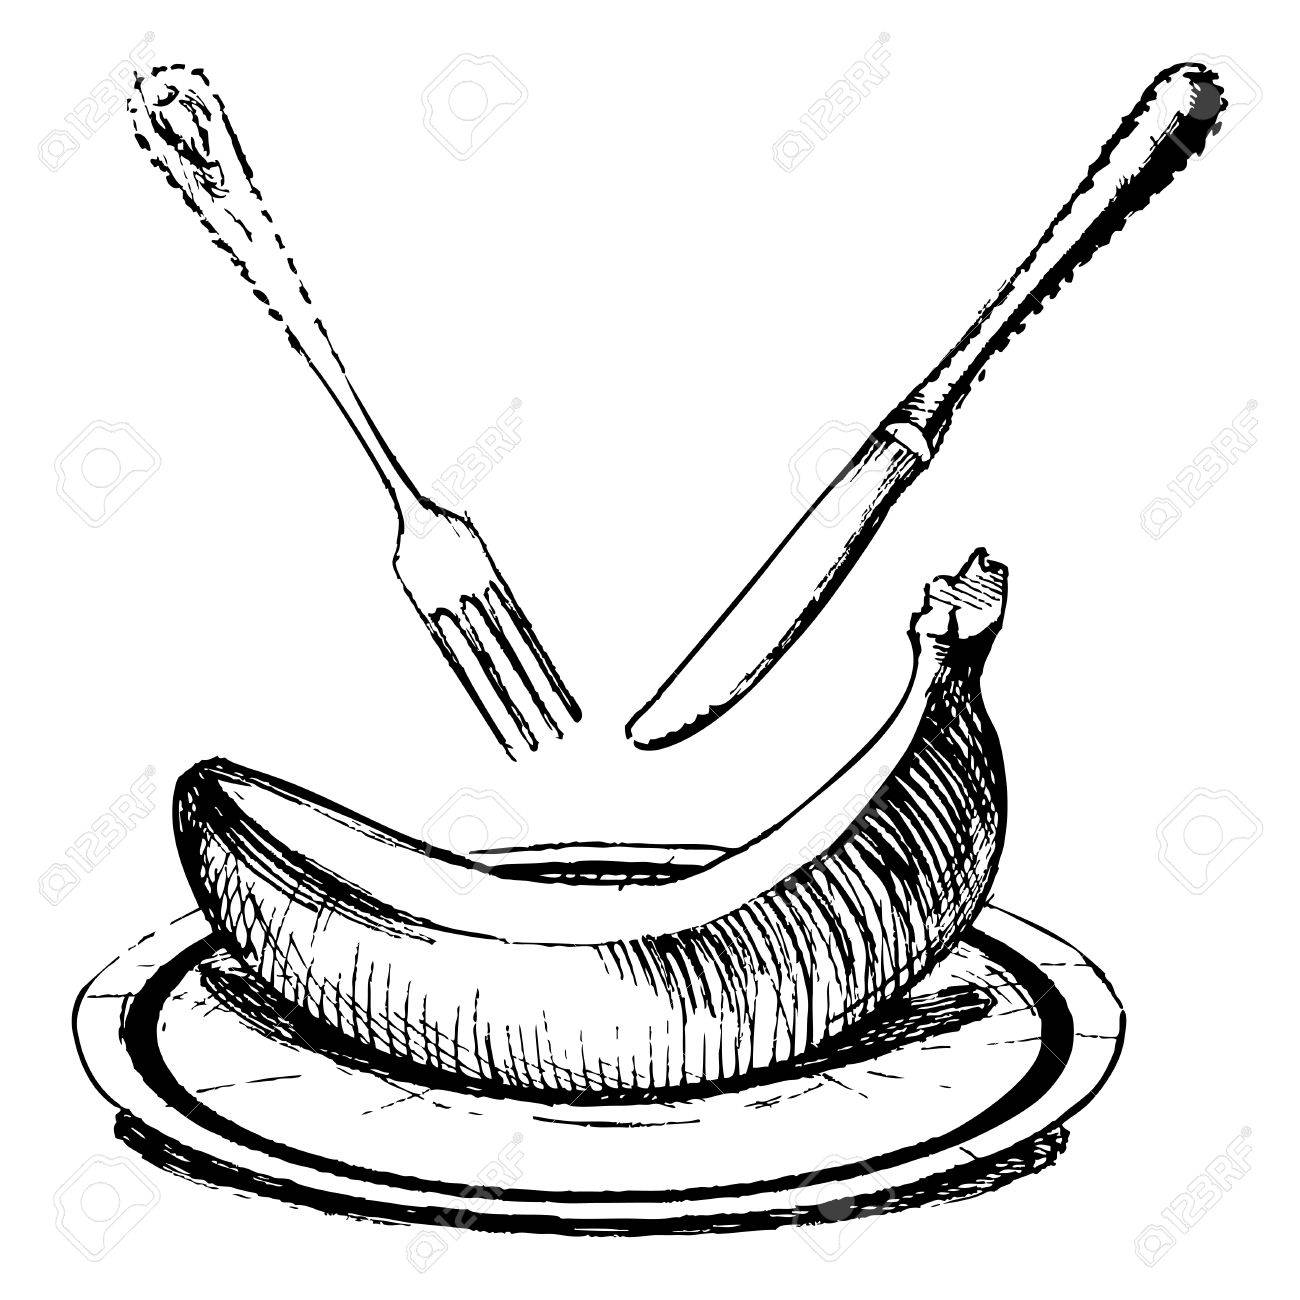 1300x1300 Vector Drawing Of Banana Stylized As Engraving Royalty Free